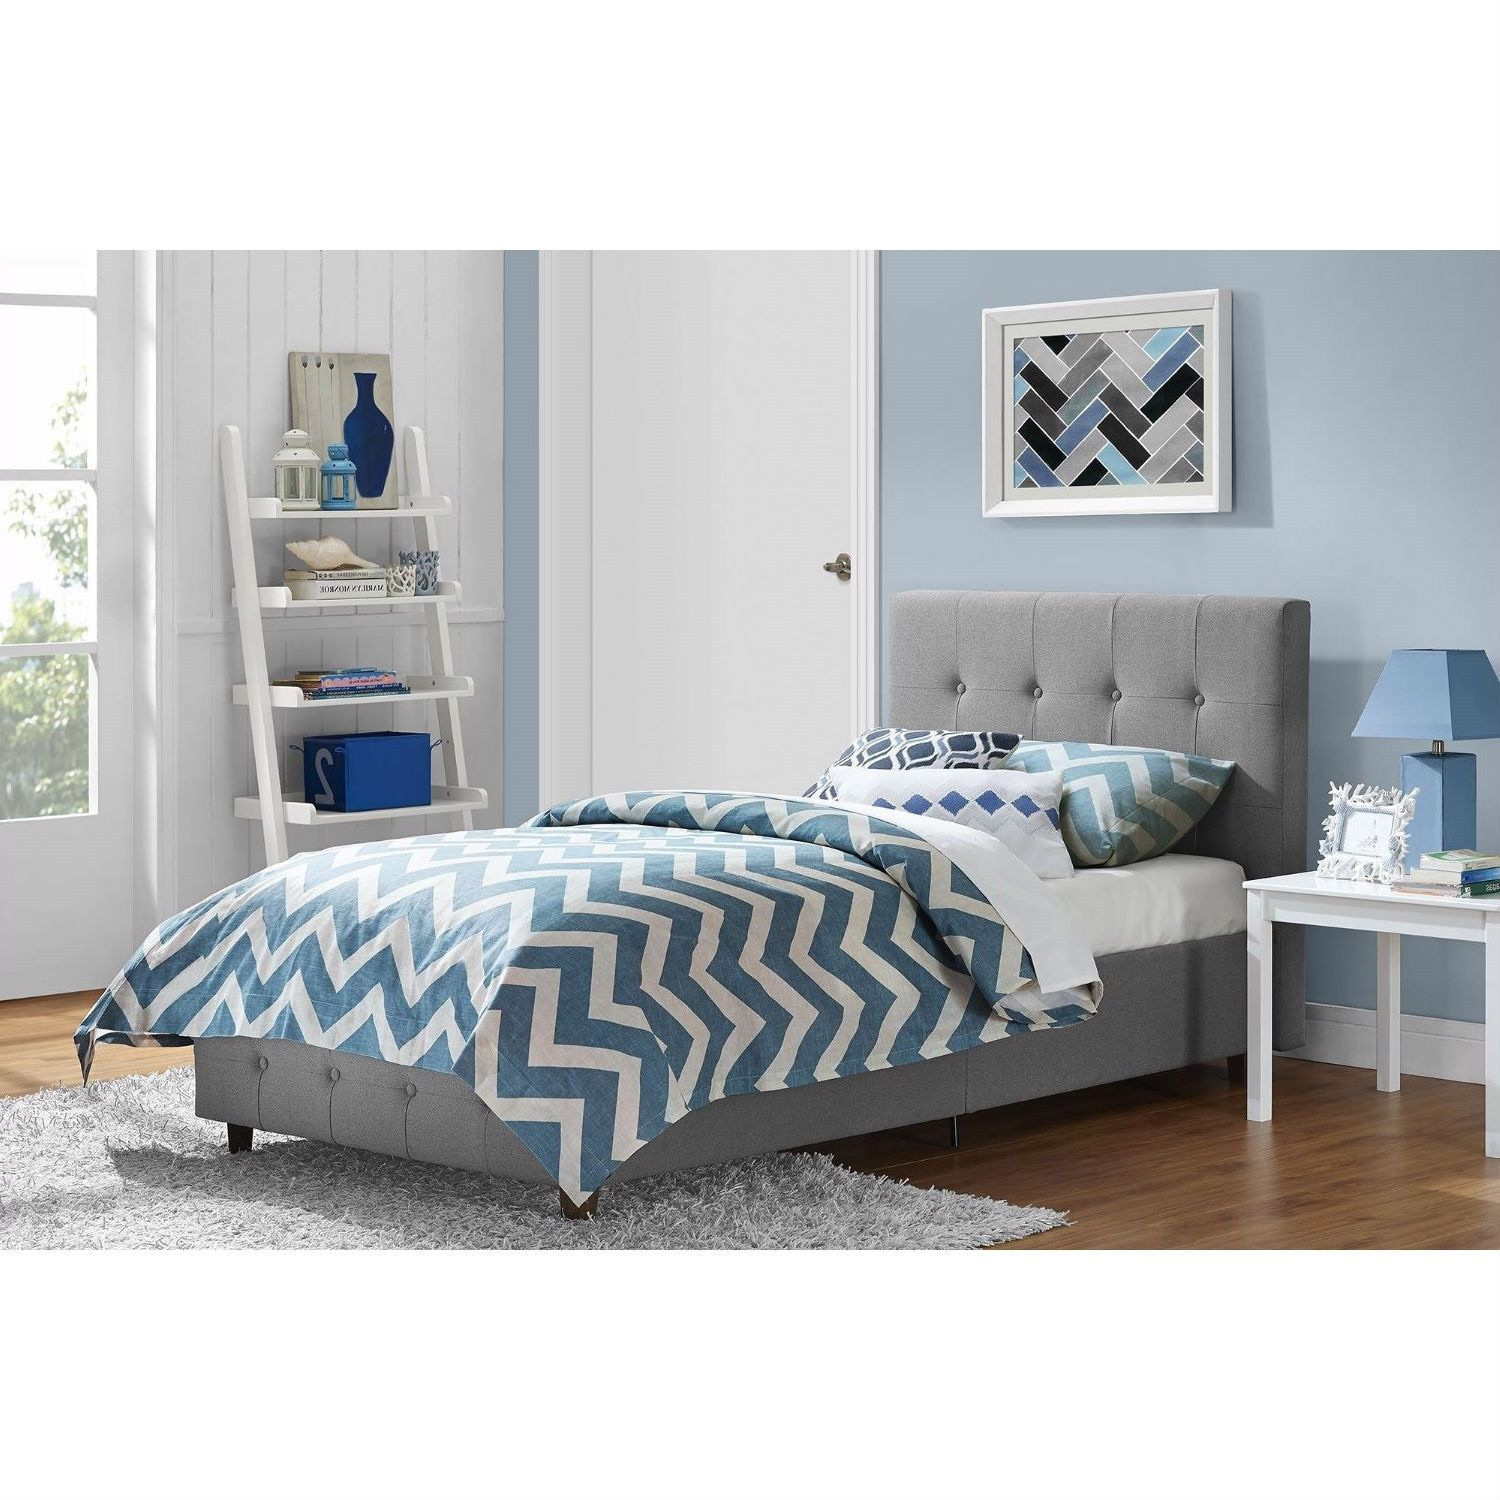 Twin Size Grey Upholstered Platform Bed Frame with Button-Tufted ...